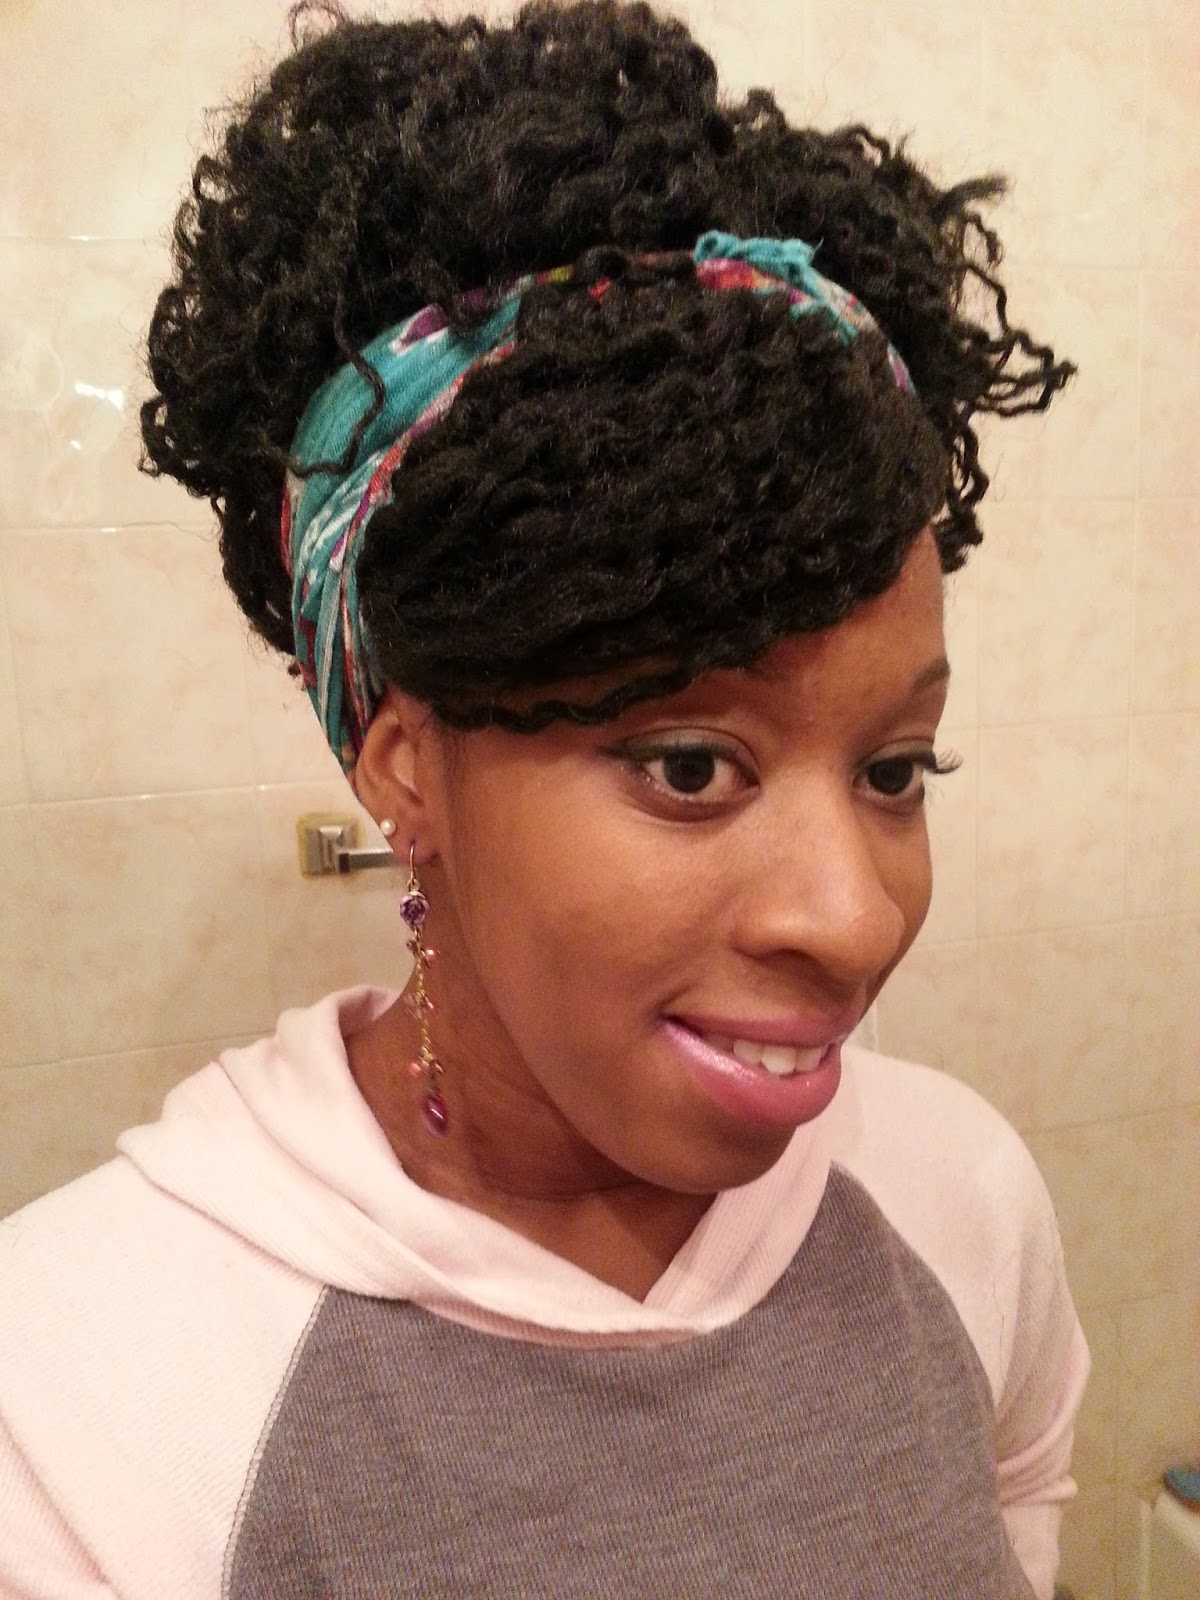 Crochet Hair Untwisted : Journey to Natural Hair: Crochet Marley Twists